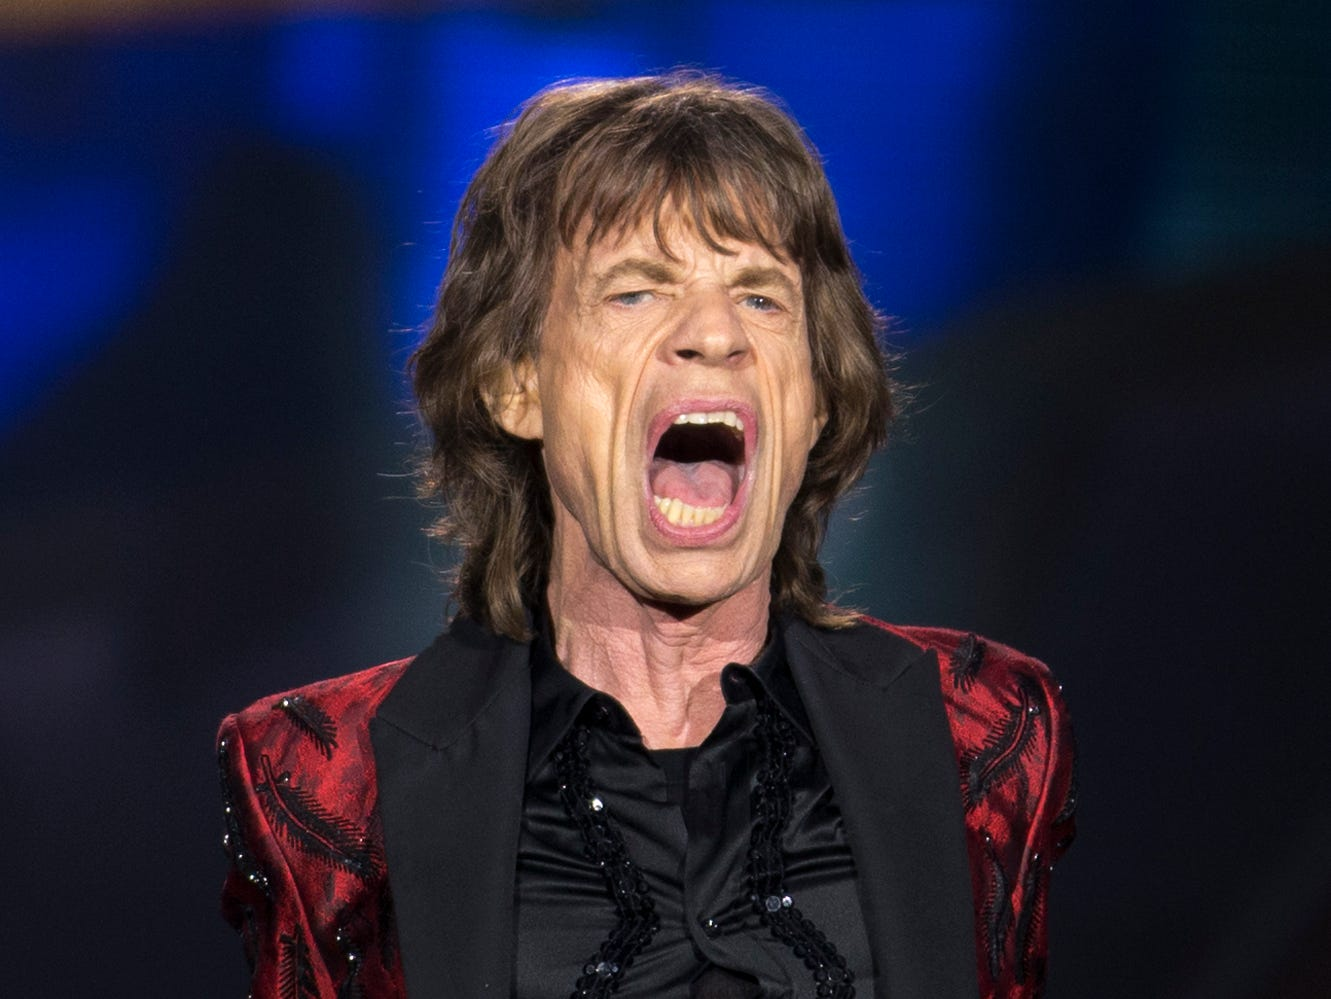 Singer Mick Jagger of British band, the Rolling Stones,  reacts as they perform,  at Real Madrid's Santiago Bernabeu soccer stadium, in Madrid, Spain, Wednesday June 25, 2014 as part of the '14 On Fire' tour. The Madrid concert is the band's only date in Spain. (AP Photo/Paul White)